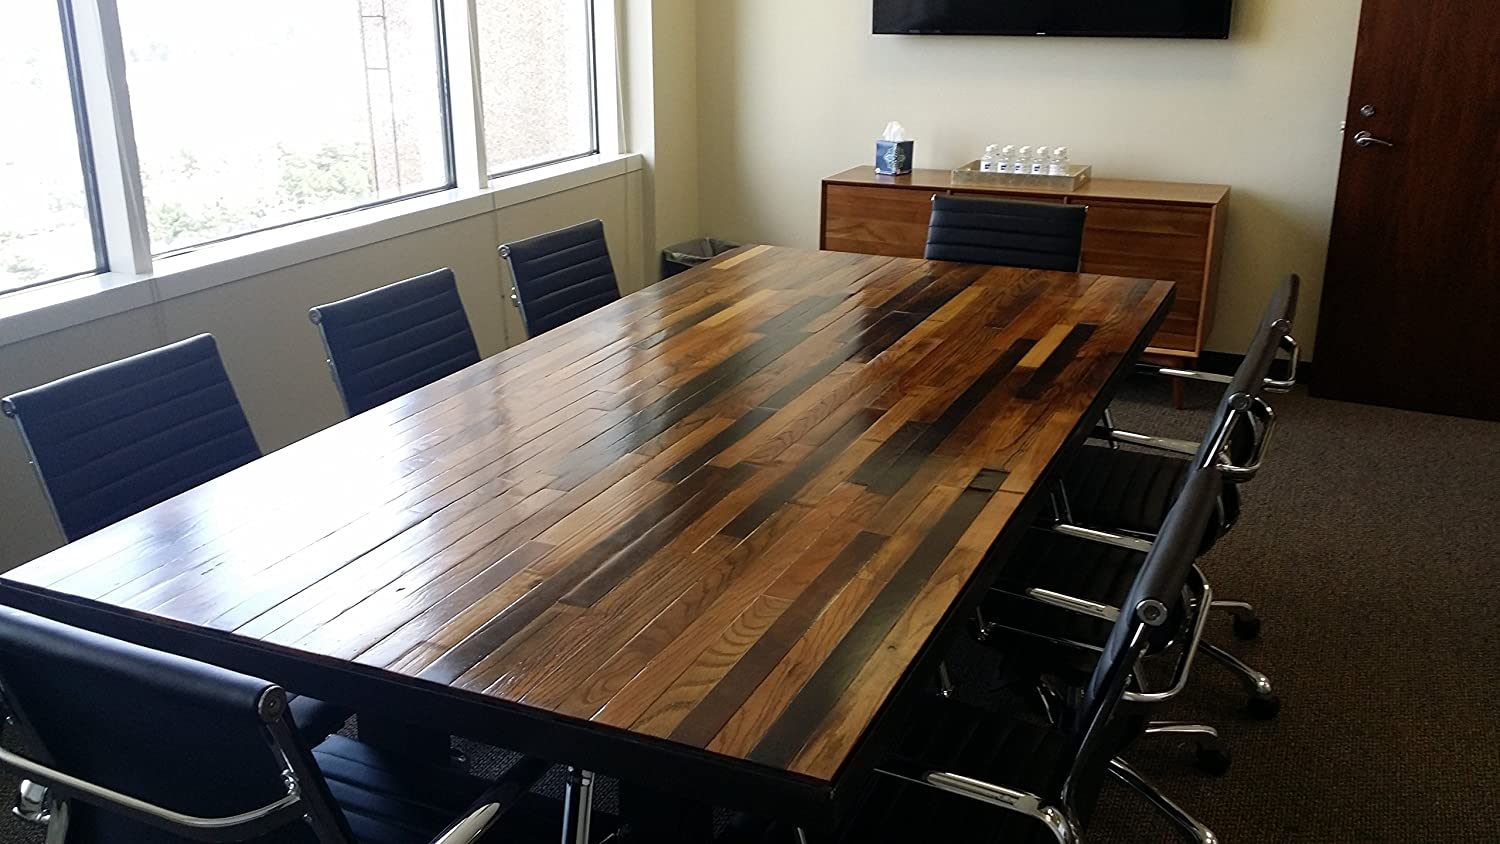 Amazon.com: Washington Executive Our Handmade Work, Contemporary Conference  Or Dining Table Made From Reclaimed Wood (Replica From The Show Scandal):  ...